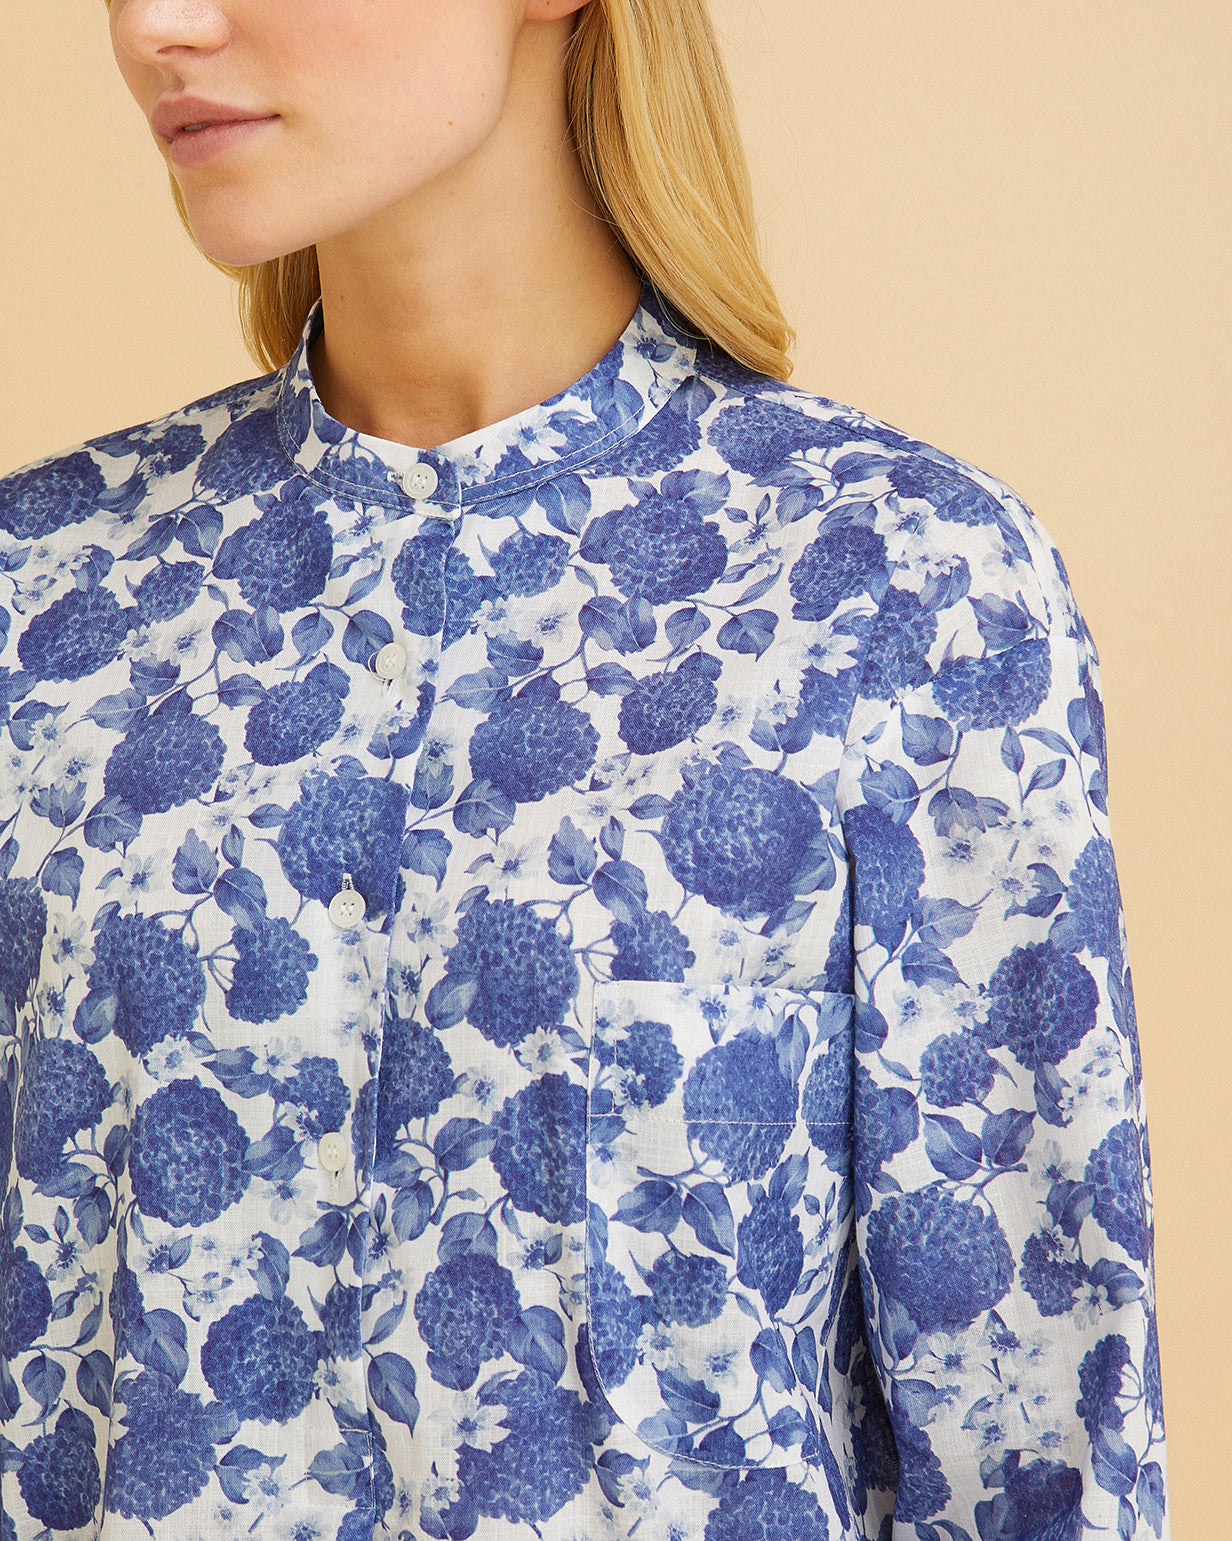 Women's Organic Cotton Nightshirt Blue Floral | Bonsoir of London